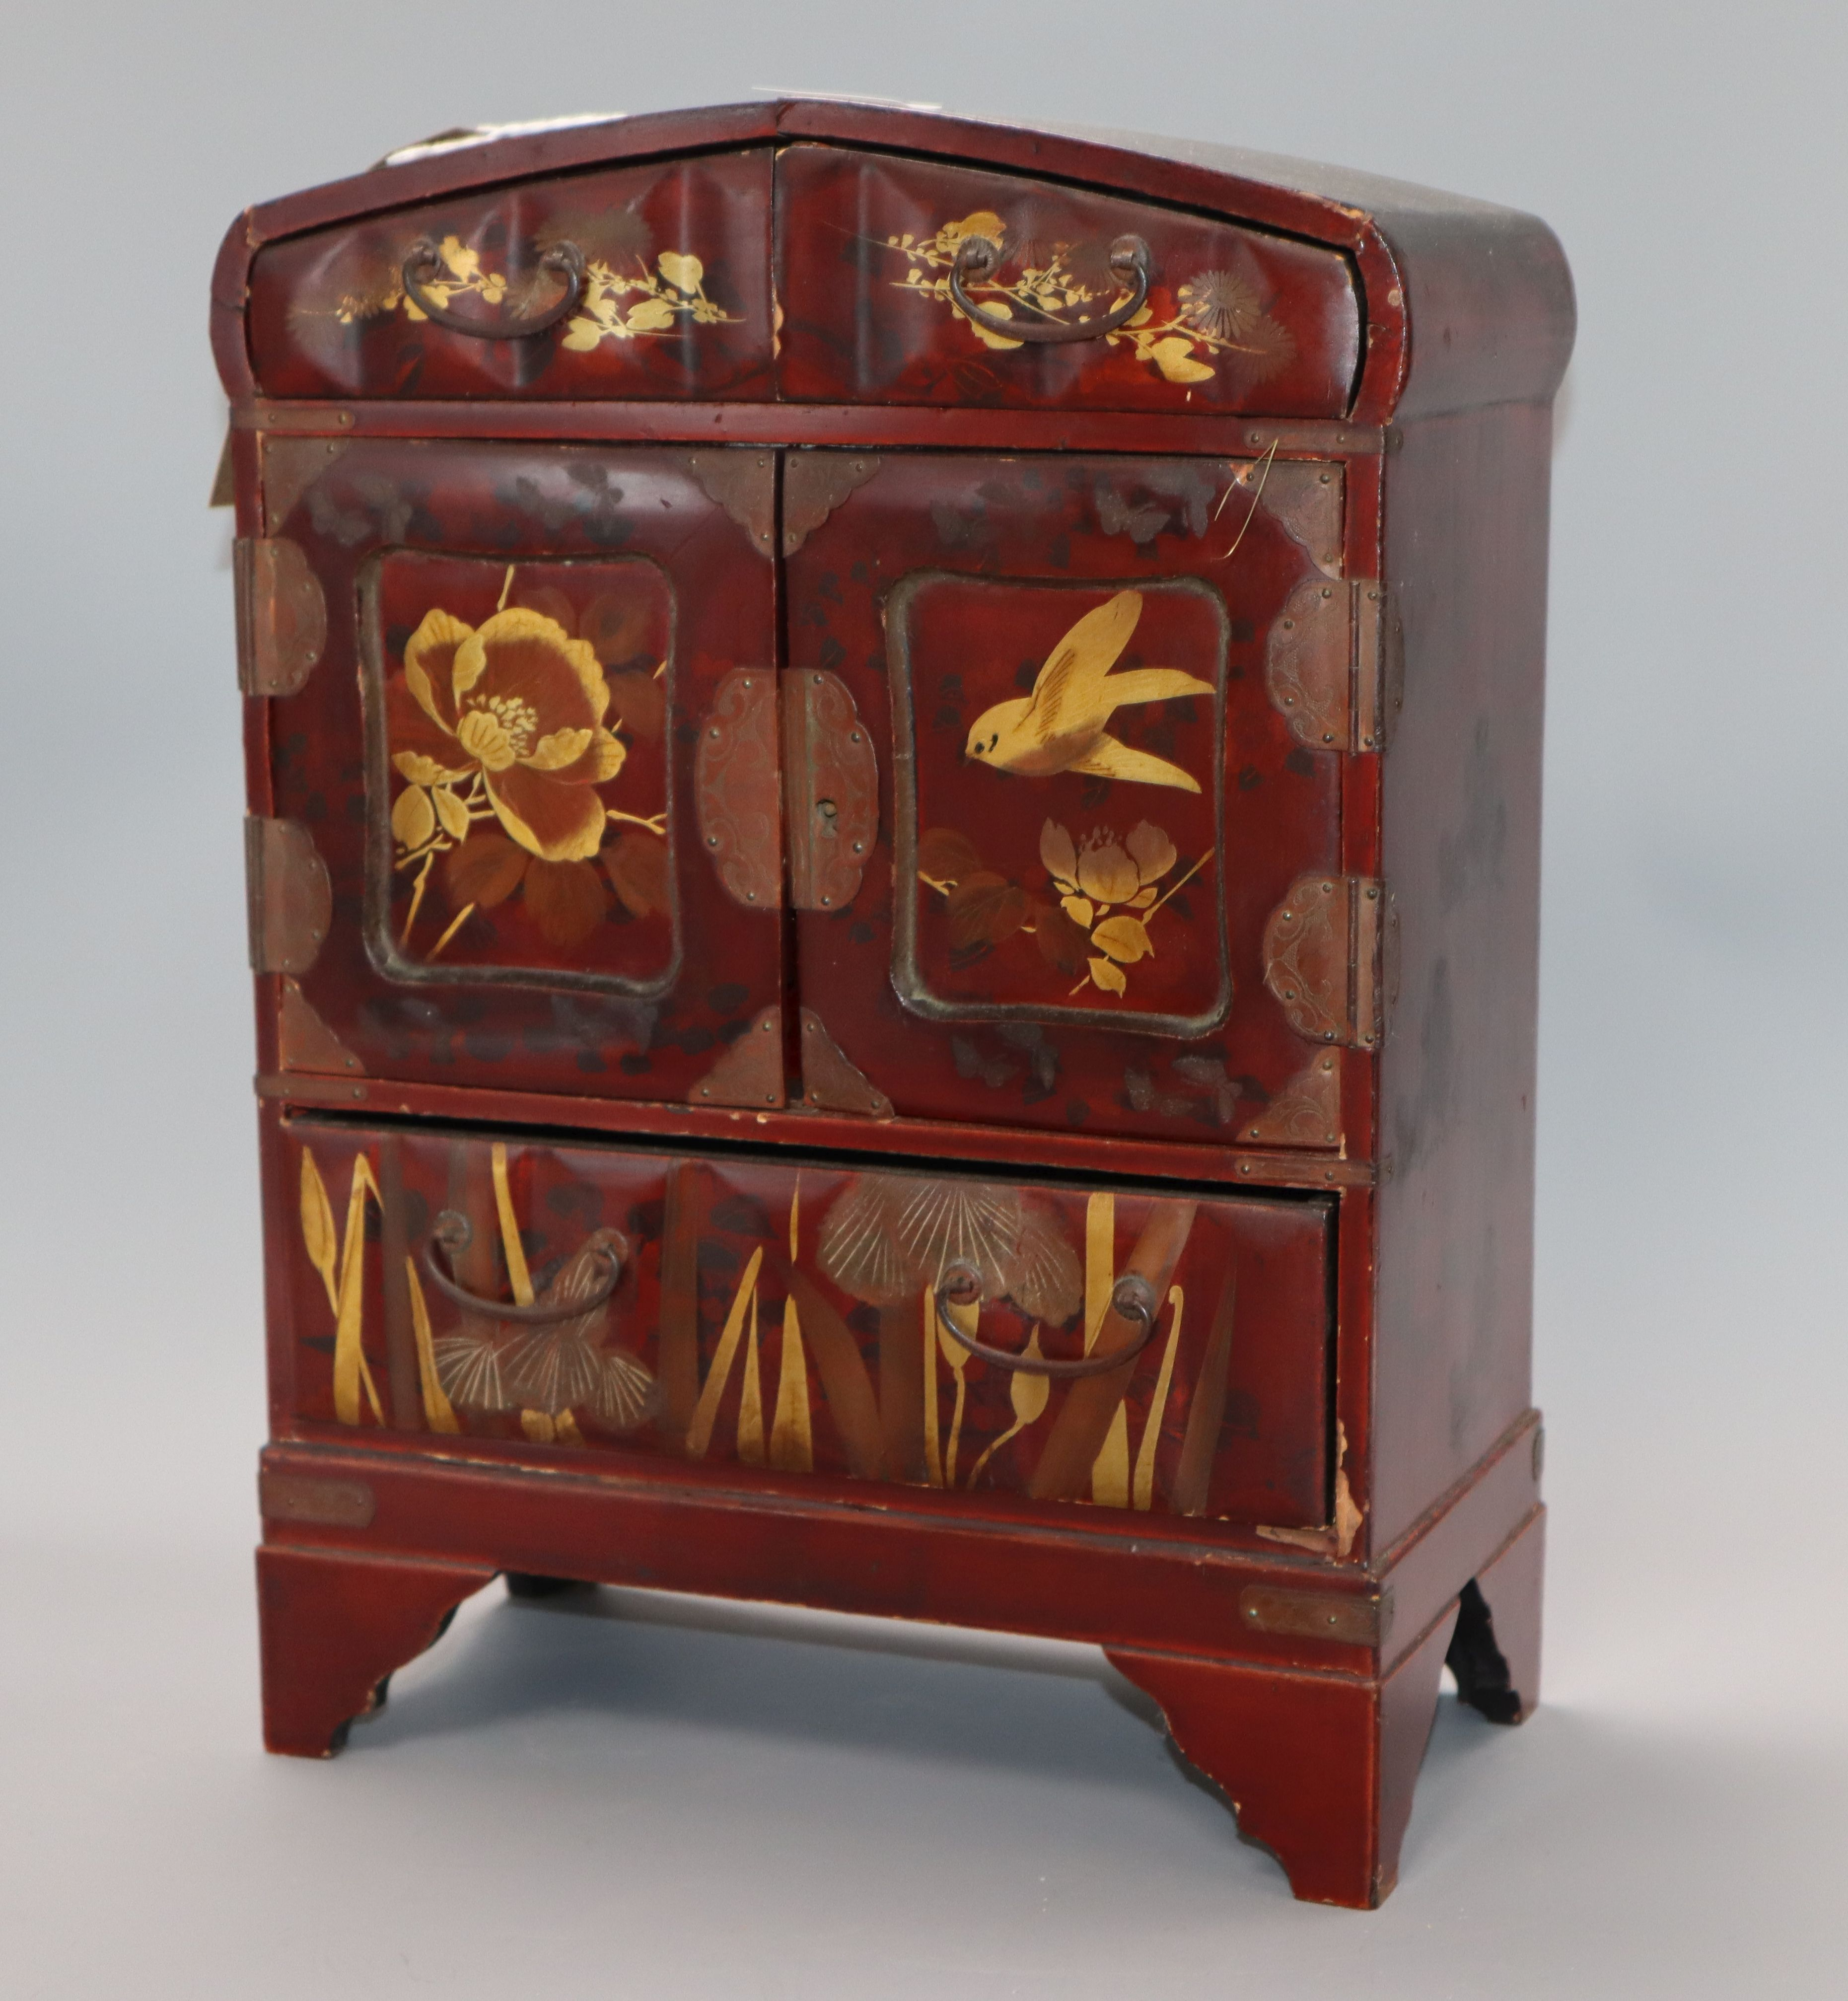 Lot 173 - A Japanese lacquered cabinet, with key height 34cm